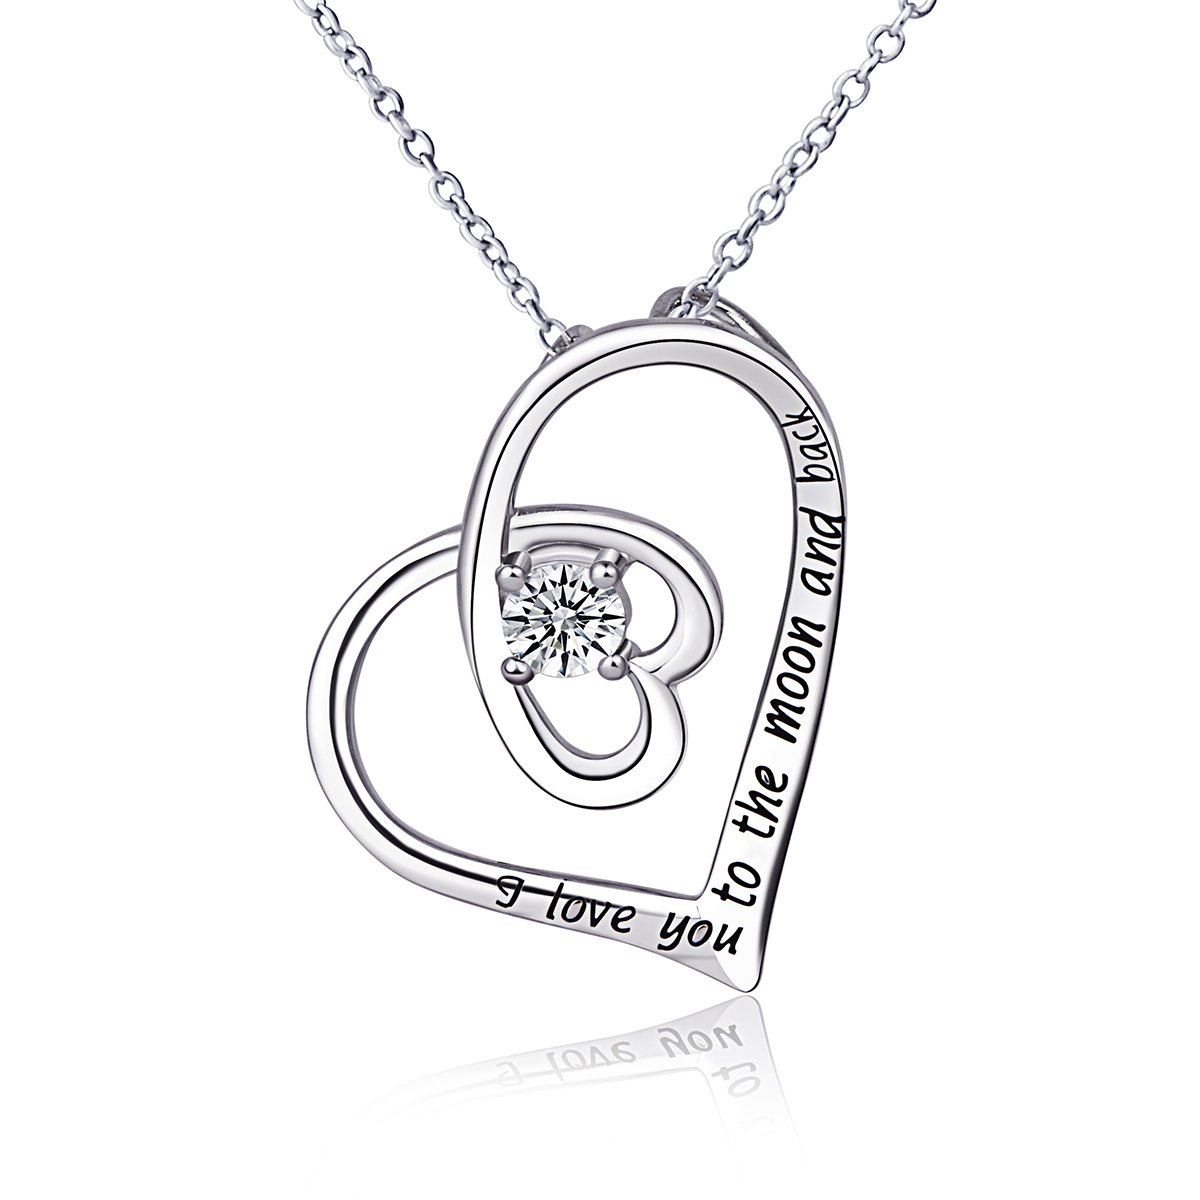 Sterling Silver ''I LOVE YOU TO THE MOON AND BACK'' Heart Pendant Necklace 18 inch